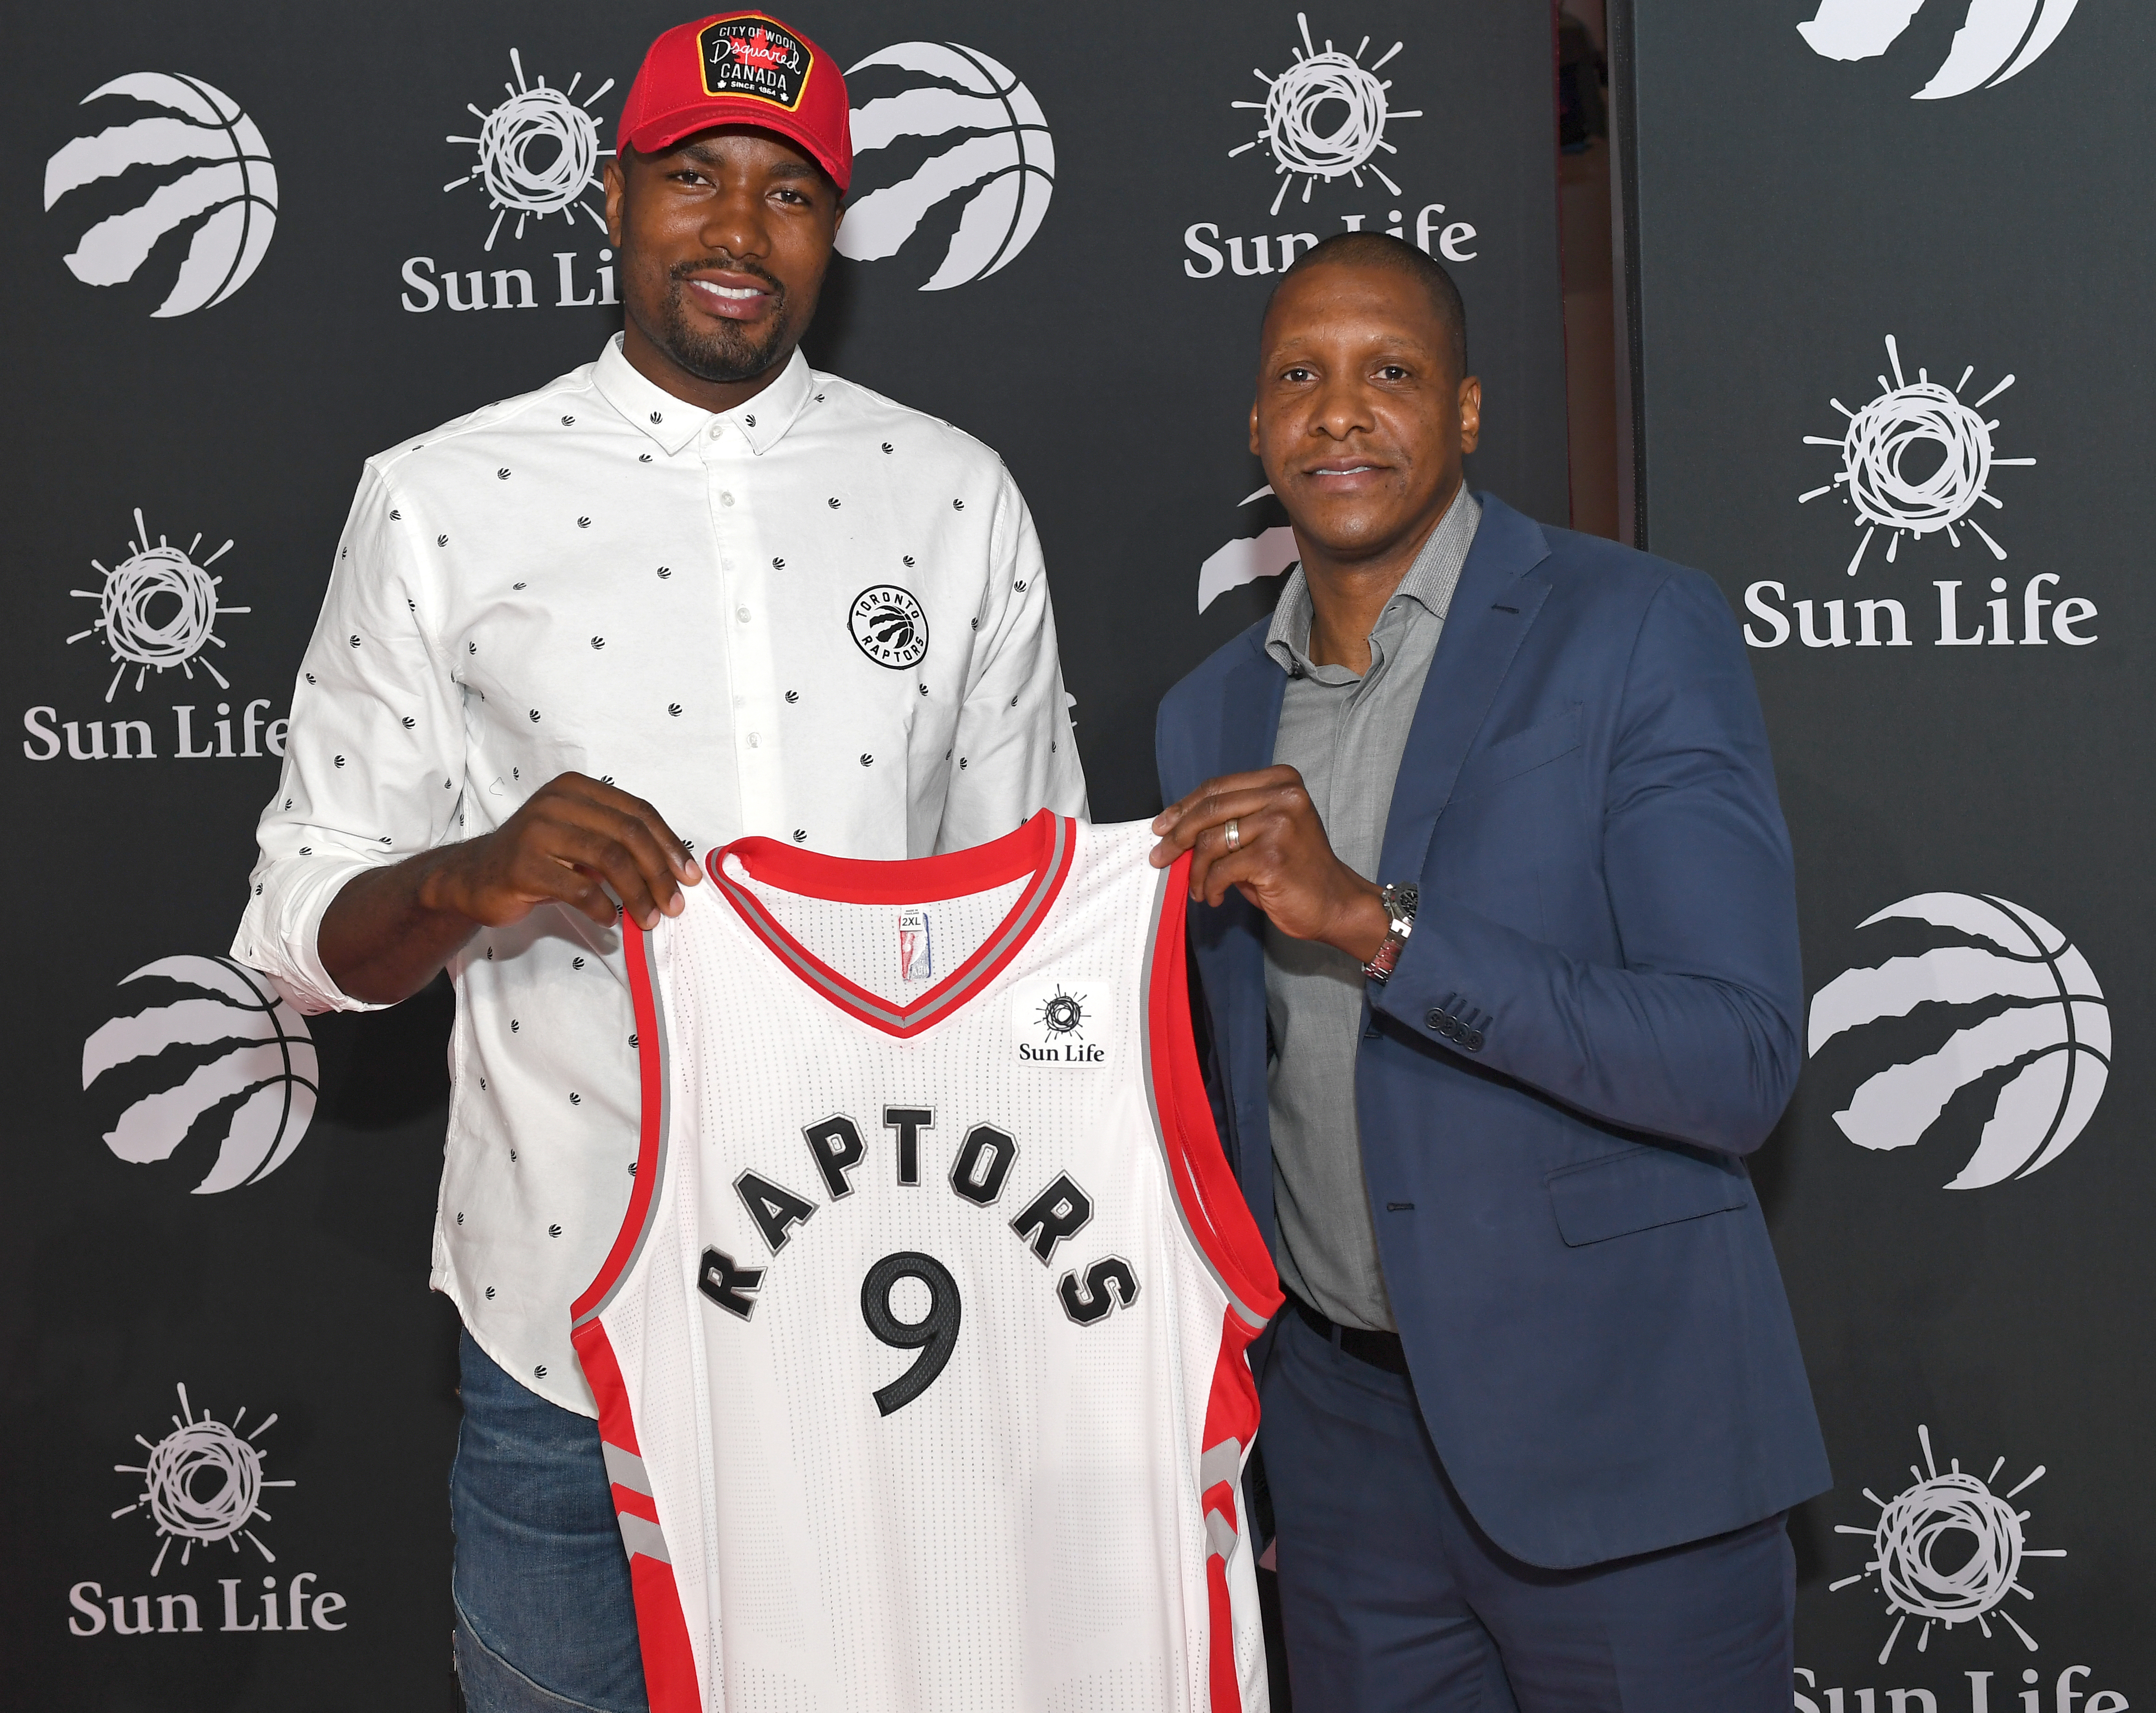 812599238-toronto-raptors-announce-the-re-signing-of-serge-ibaka-and-kyle-lowry.jpg